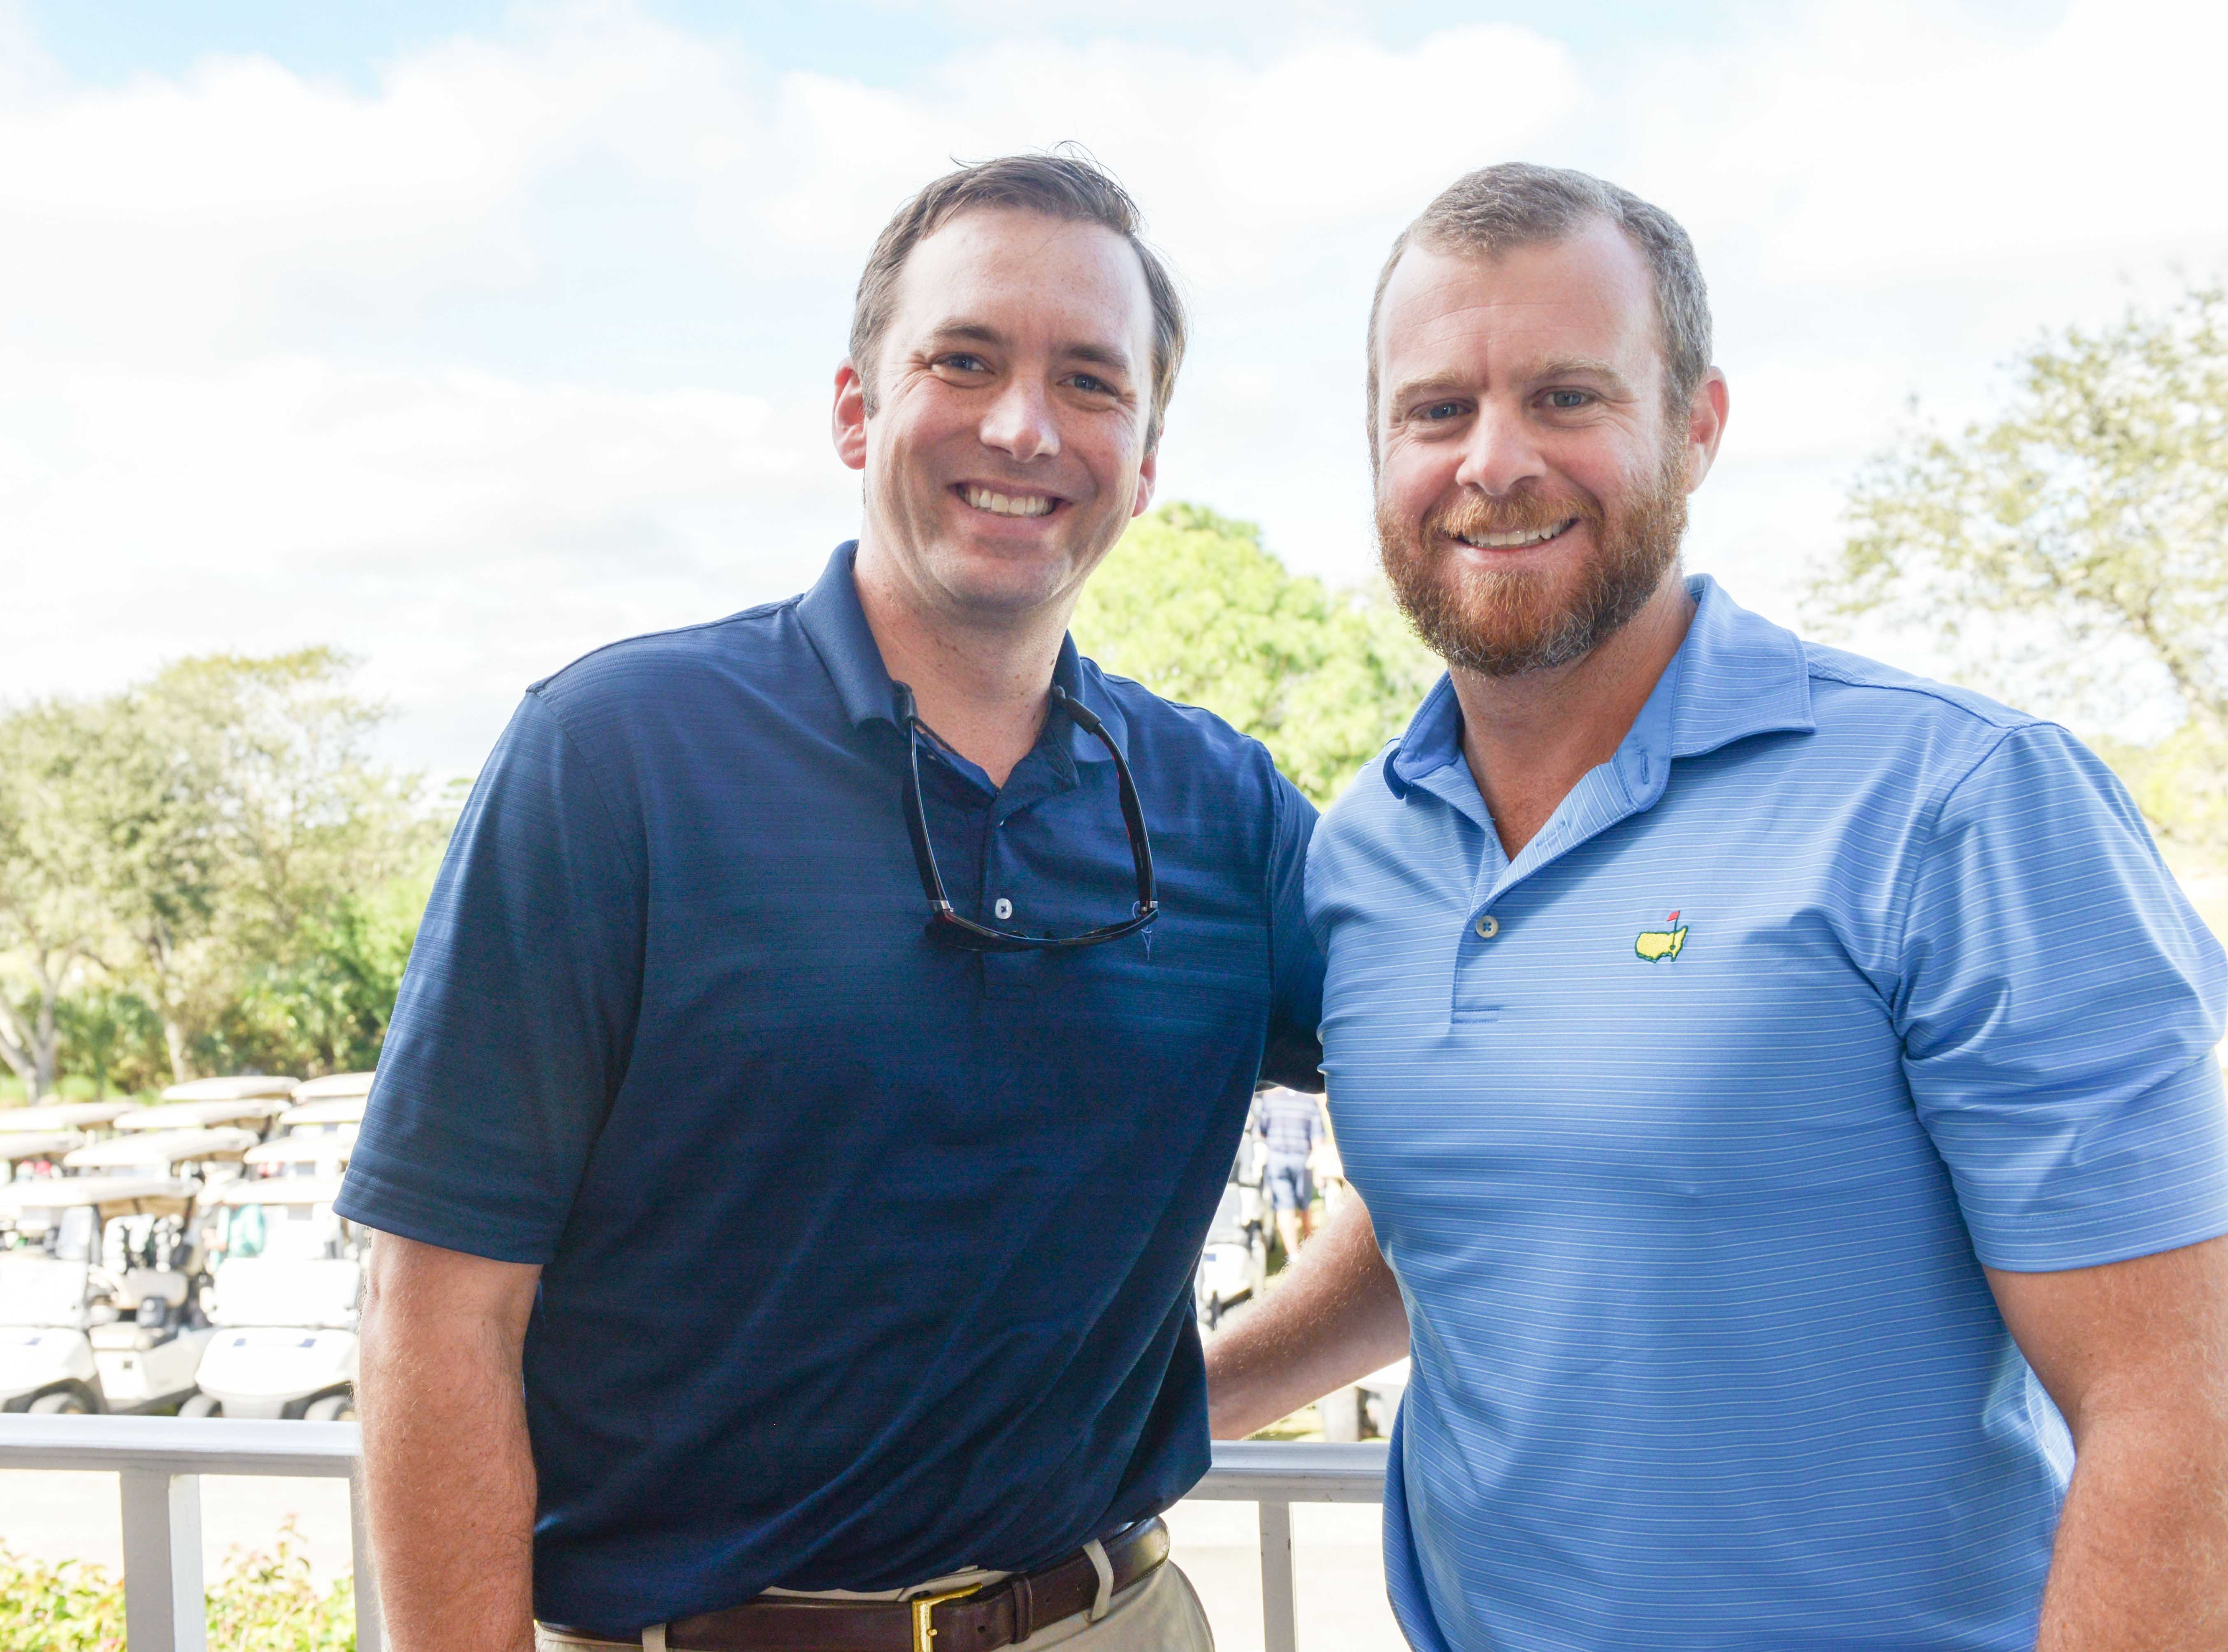 Nick Bruce, left, and Steve Boyle at Hawk's Nest Golf Club for the Big Brothers Big Sisters Golf Tournament on Feb. 4.